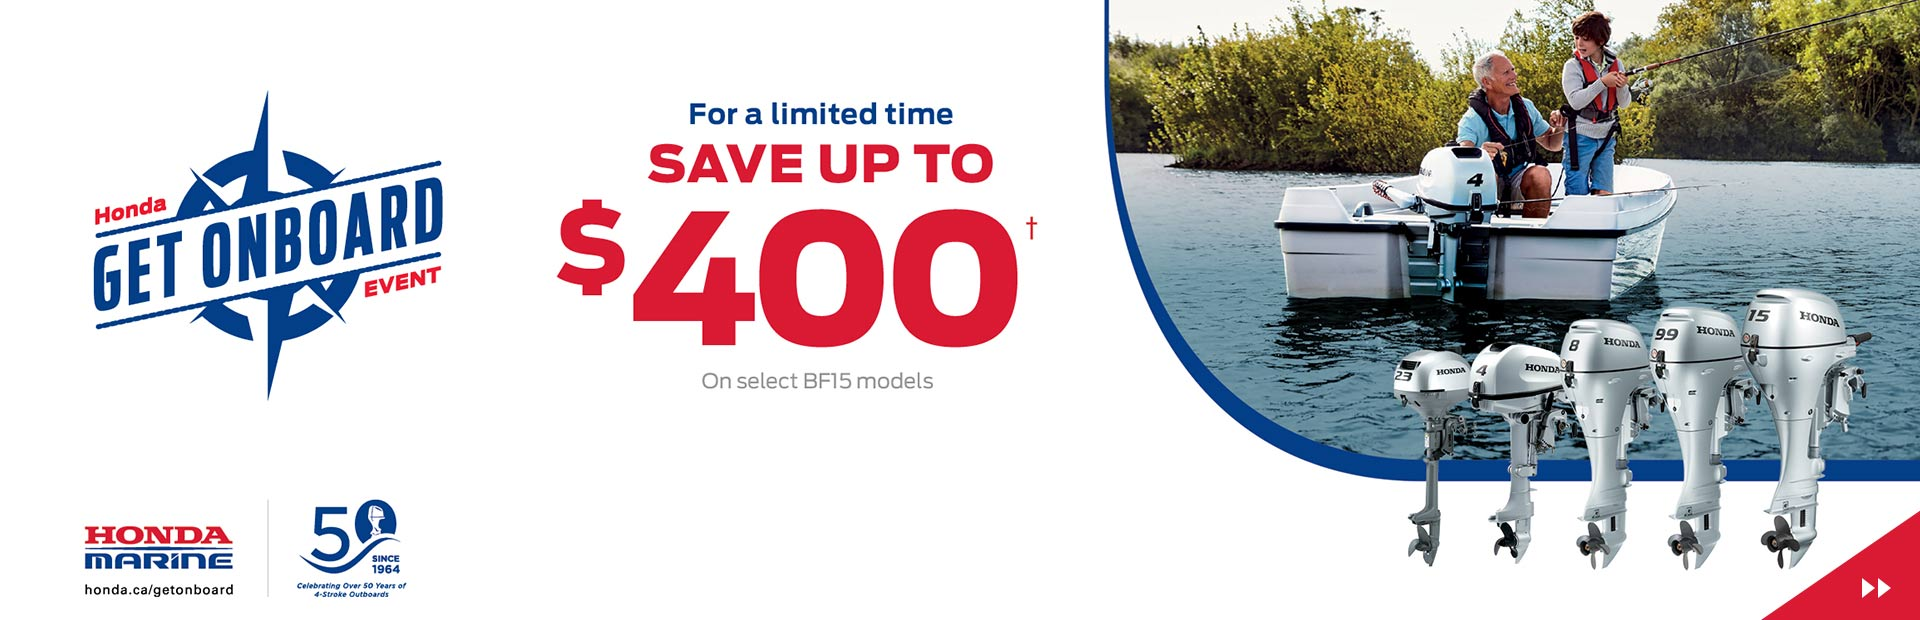 Honda Get Onboard Event - SAVE UP TO $400 on Portable Outboard Motors!